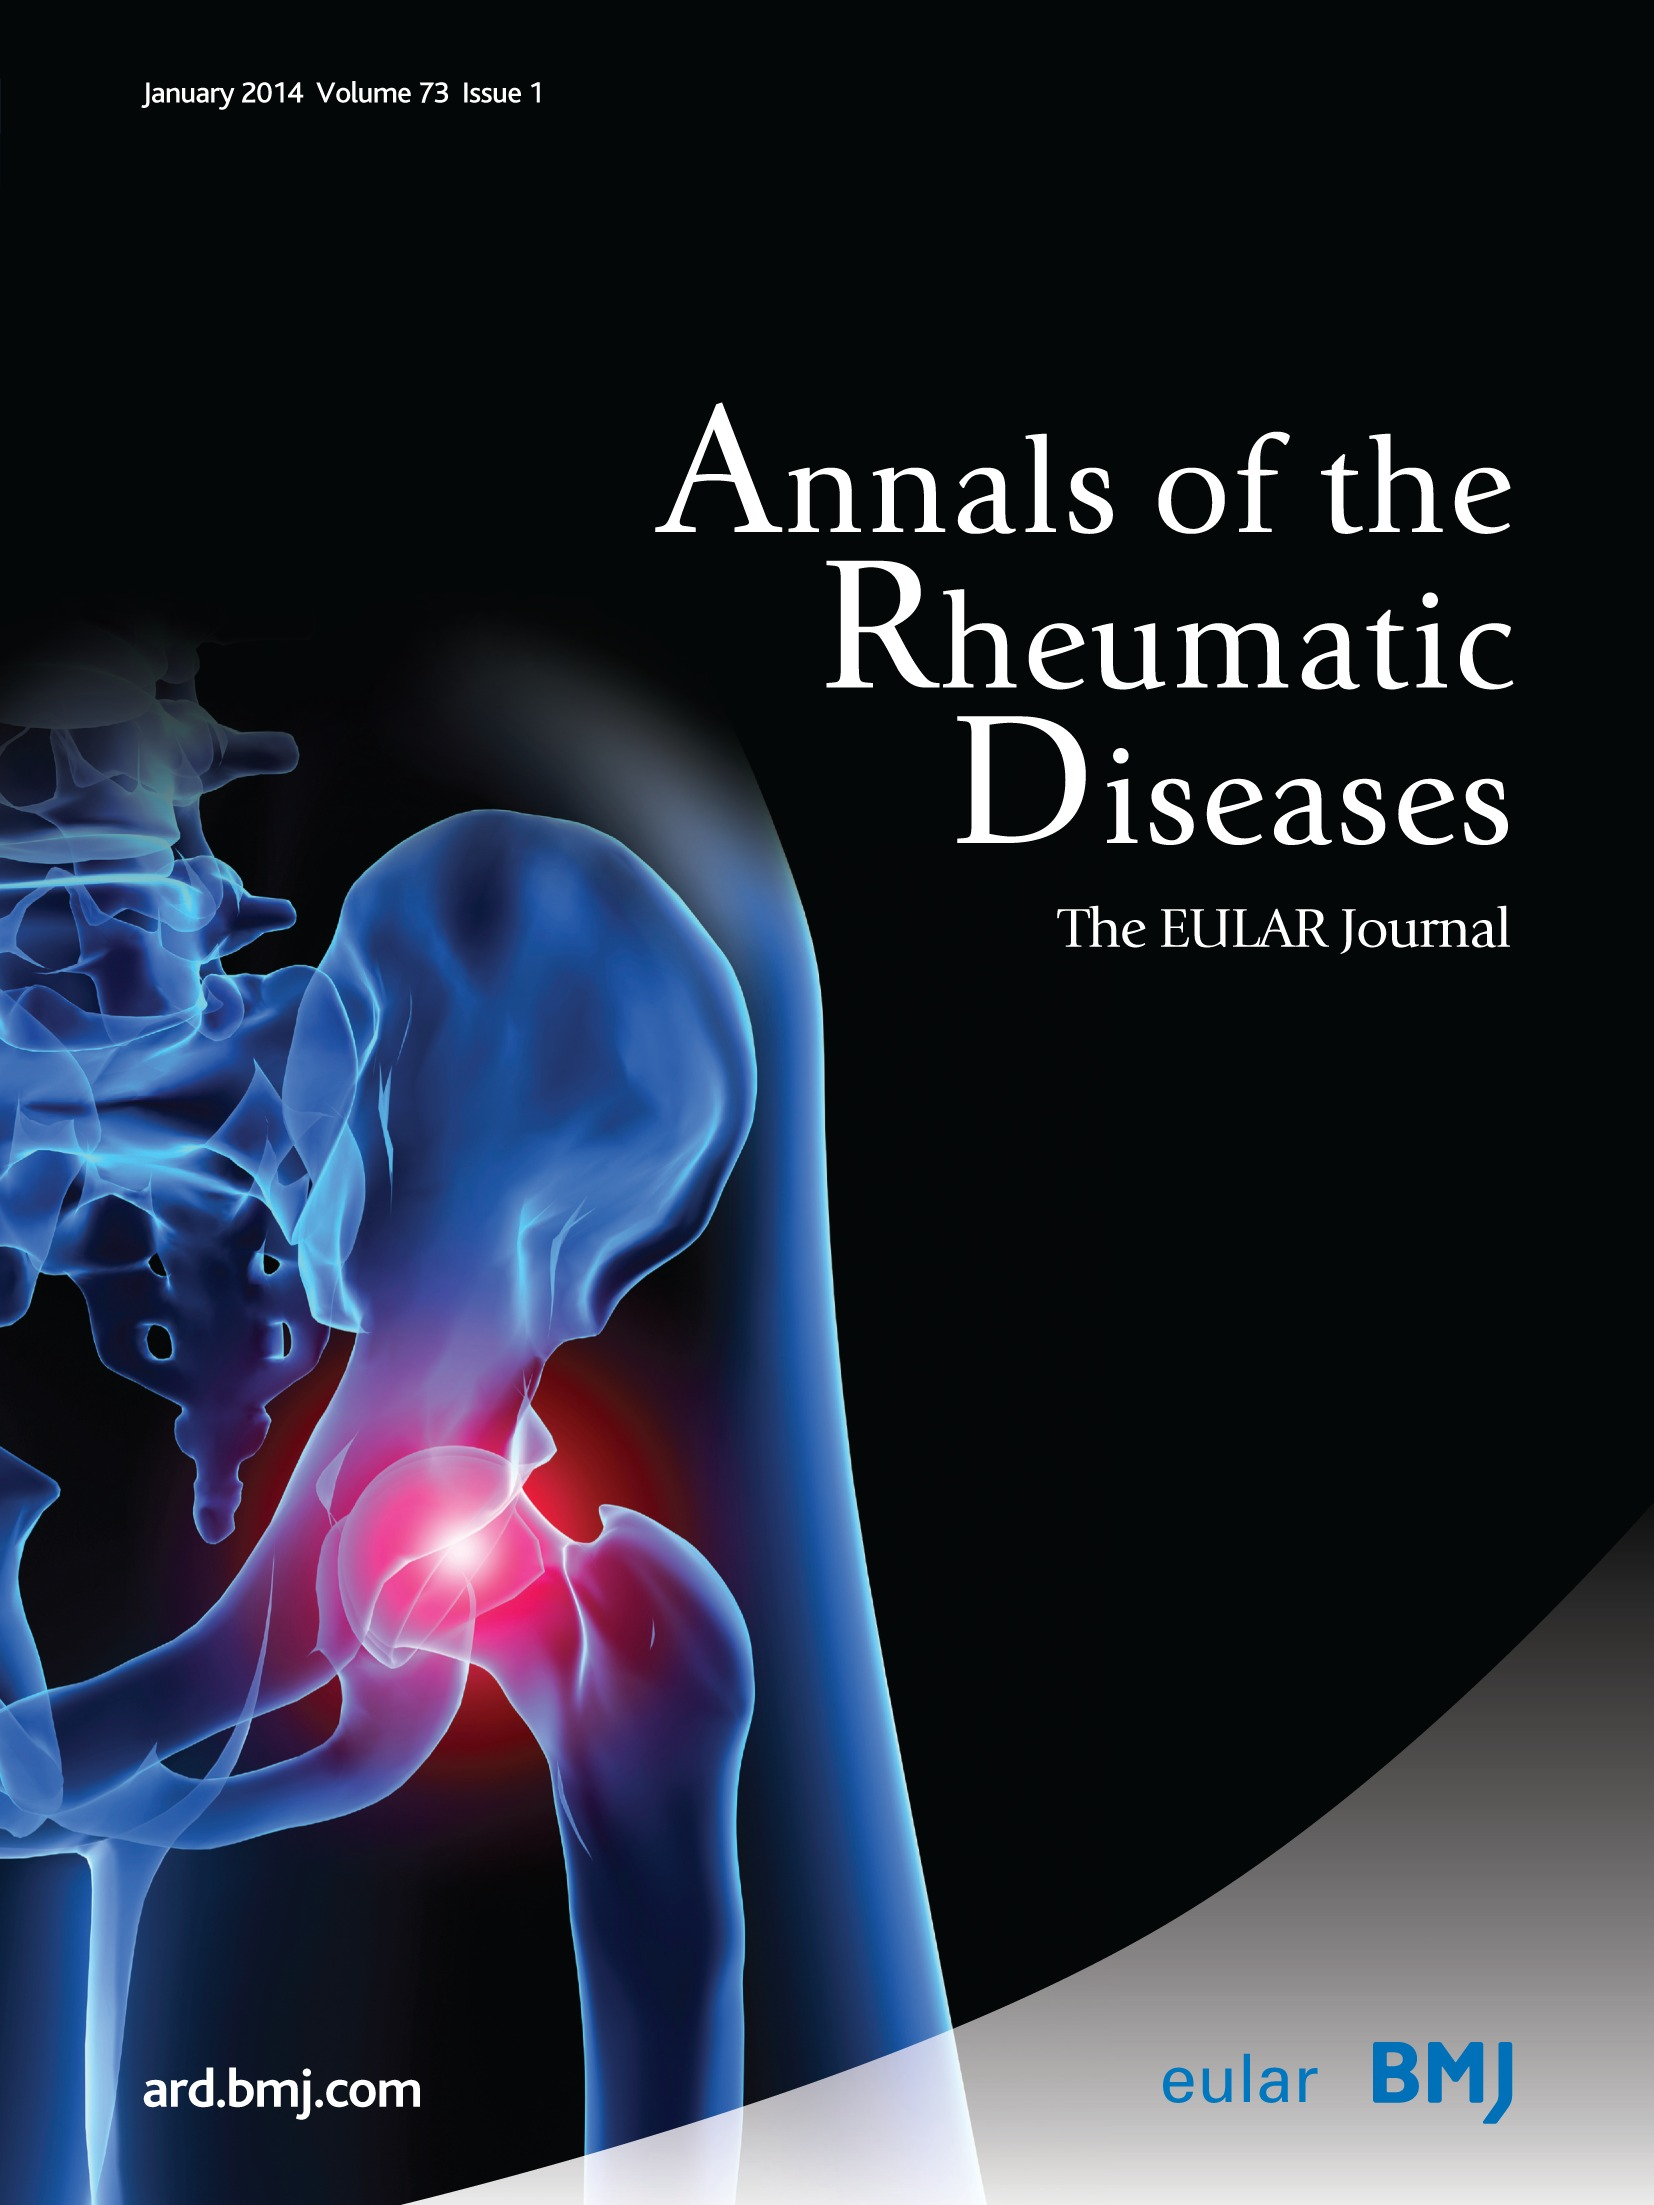 ... rheumatoid arthritis and evaluation of their monitoring: results of an  international, cross-sectional study (COMORA) | Annals of the Rheumatic  Diseases